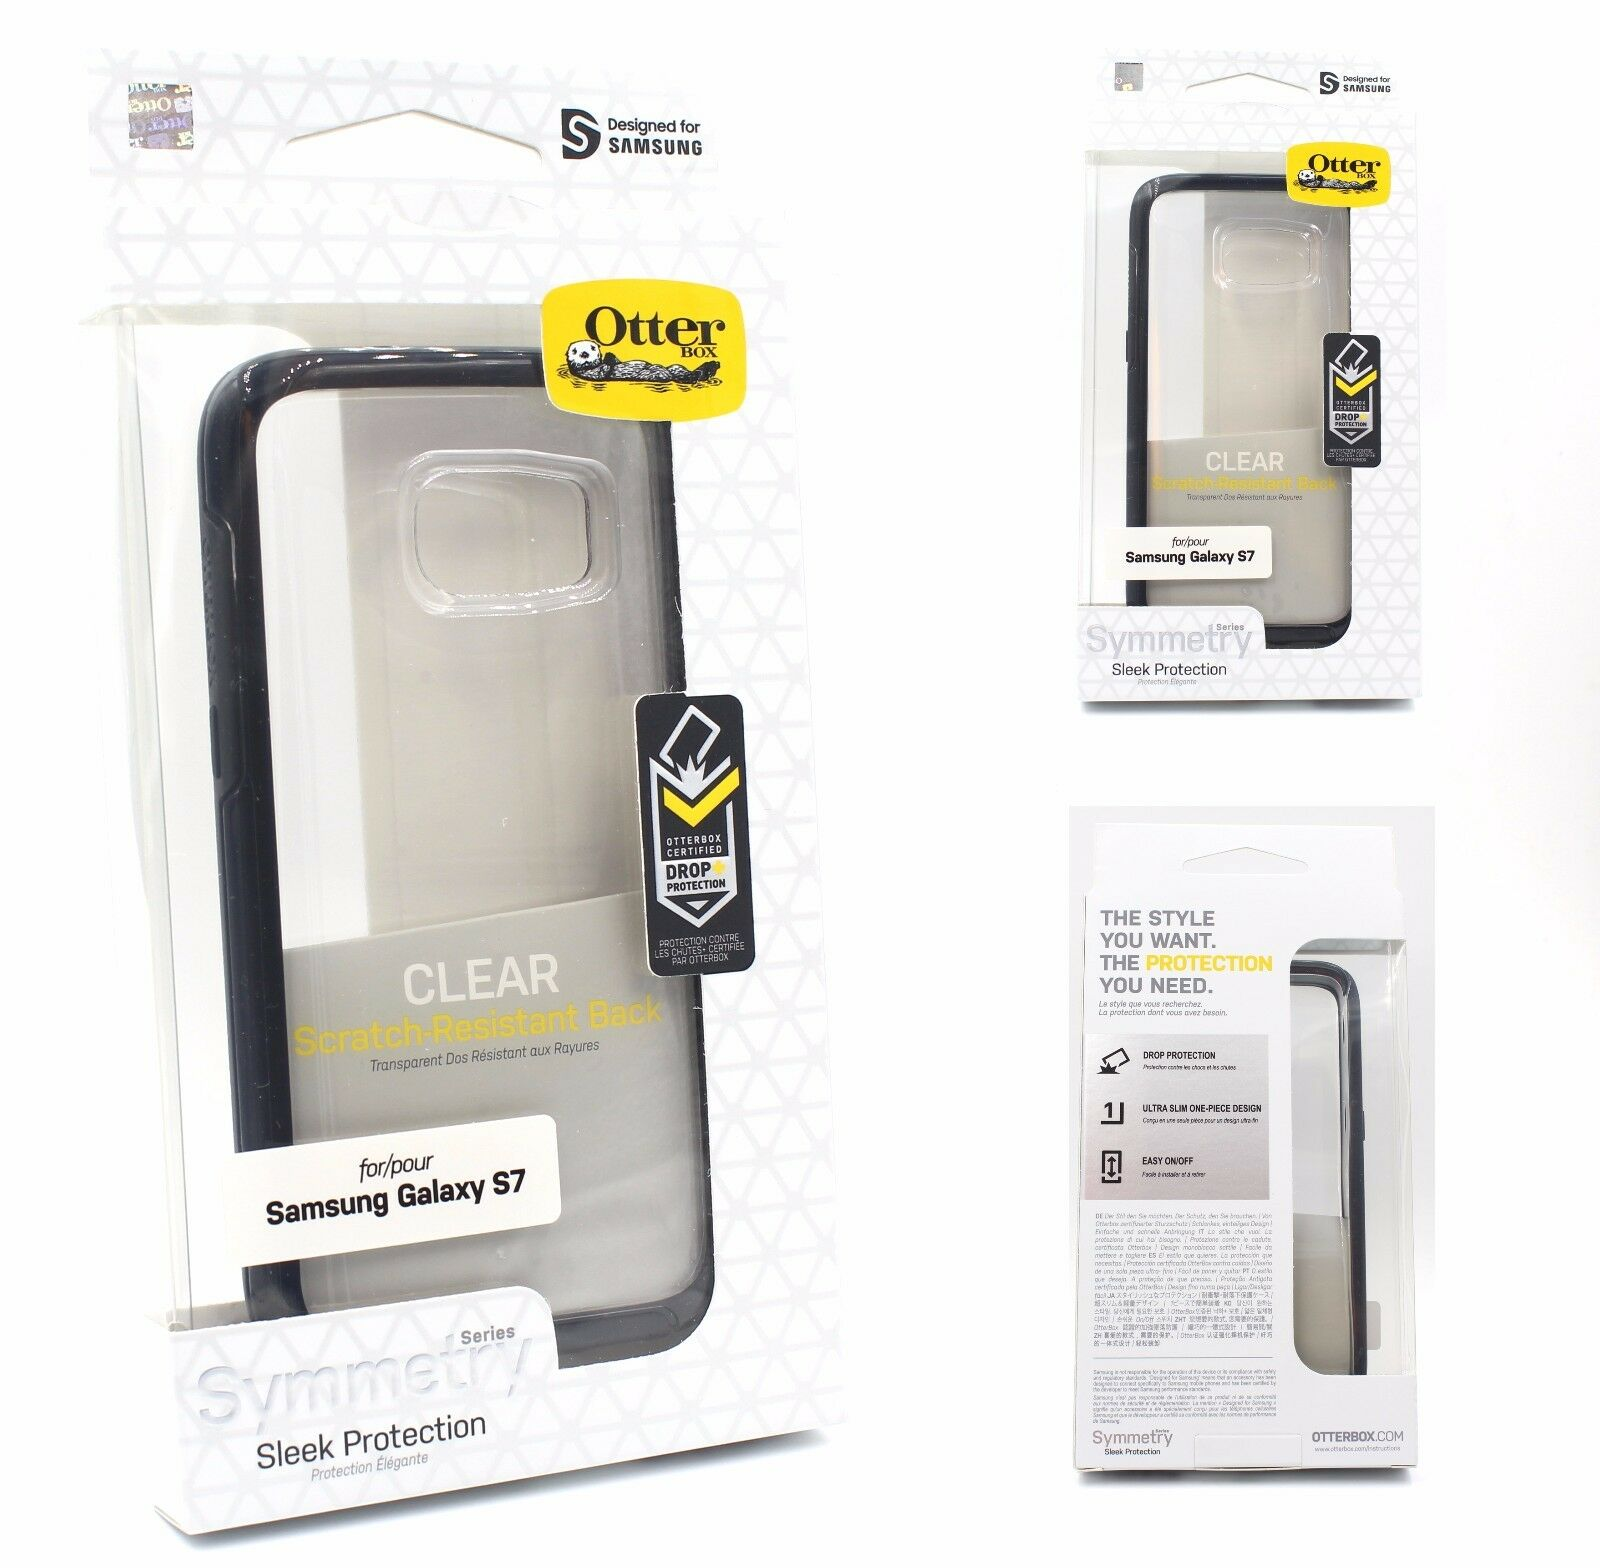 how to tell a genuine otterbox